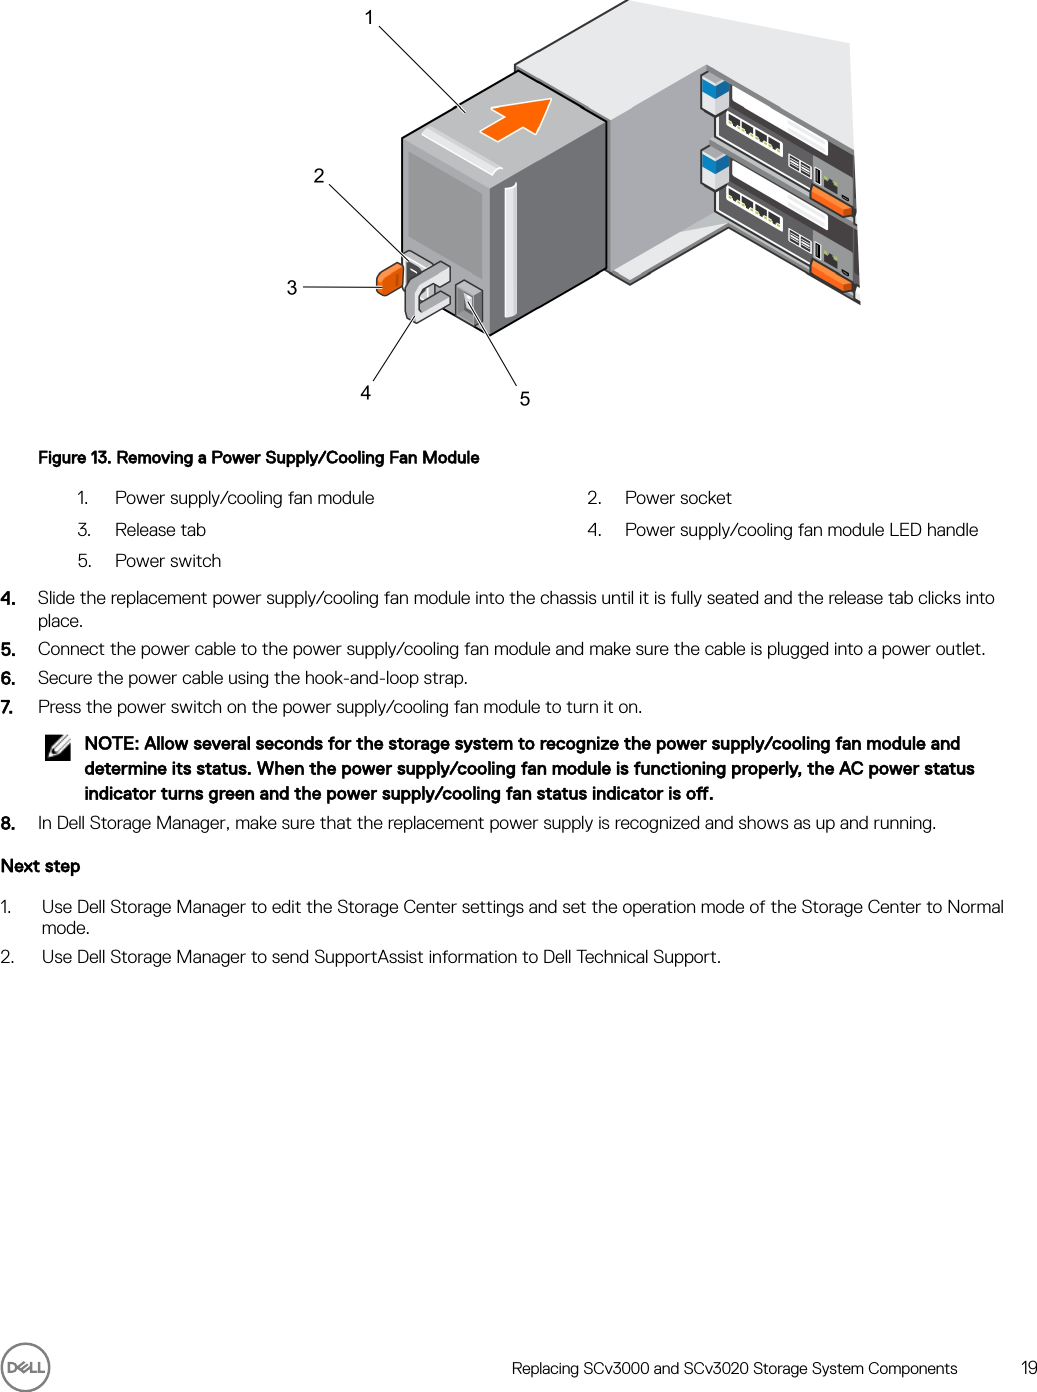 Dell Storage scv3000 And SCv3020 System Owner's Manual User Owner's